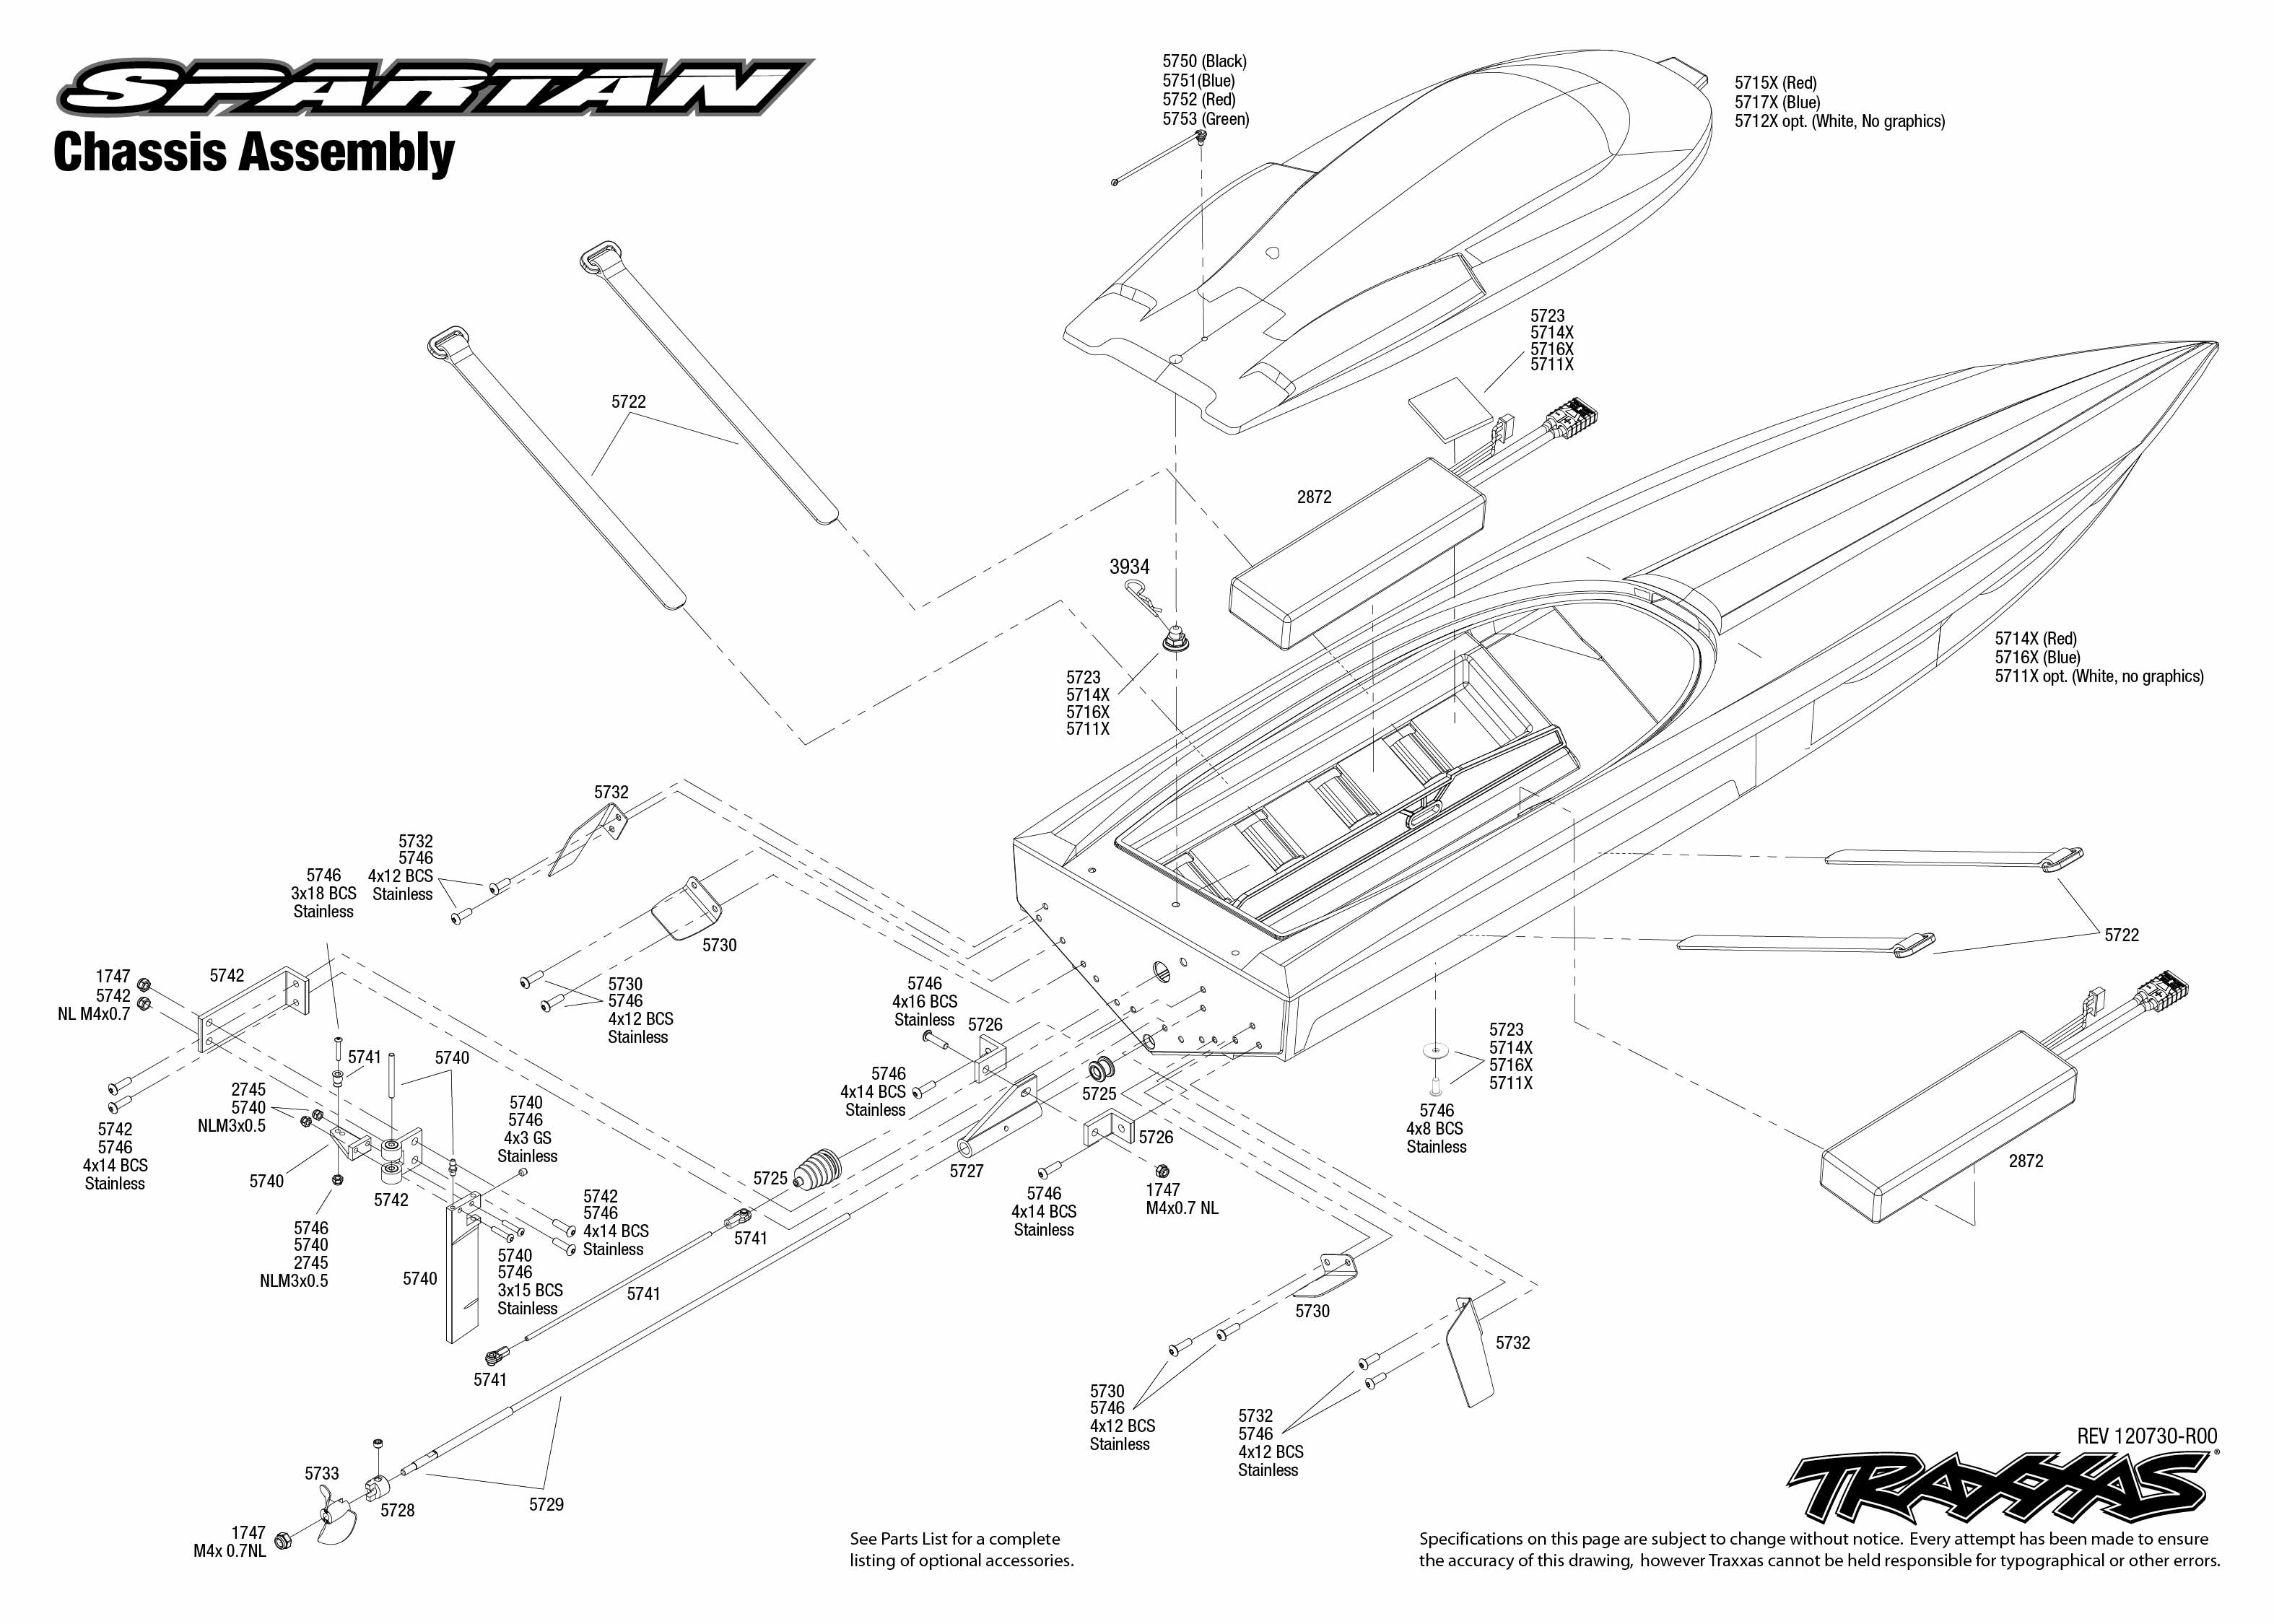 traxxas spartan brushless race boat 5707l 5707 chassis exploded view spartan vxl 6s powered by castle creations